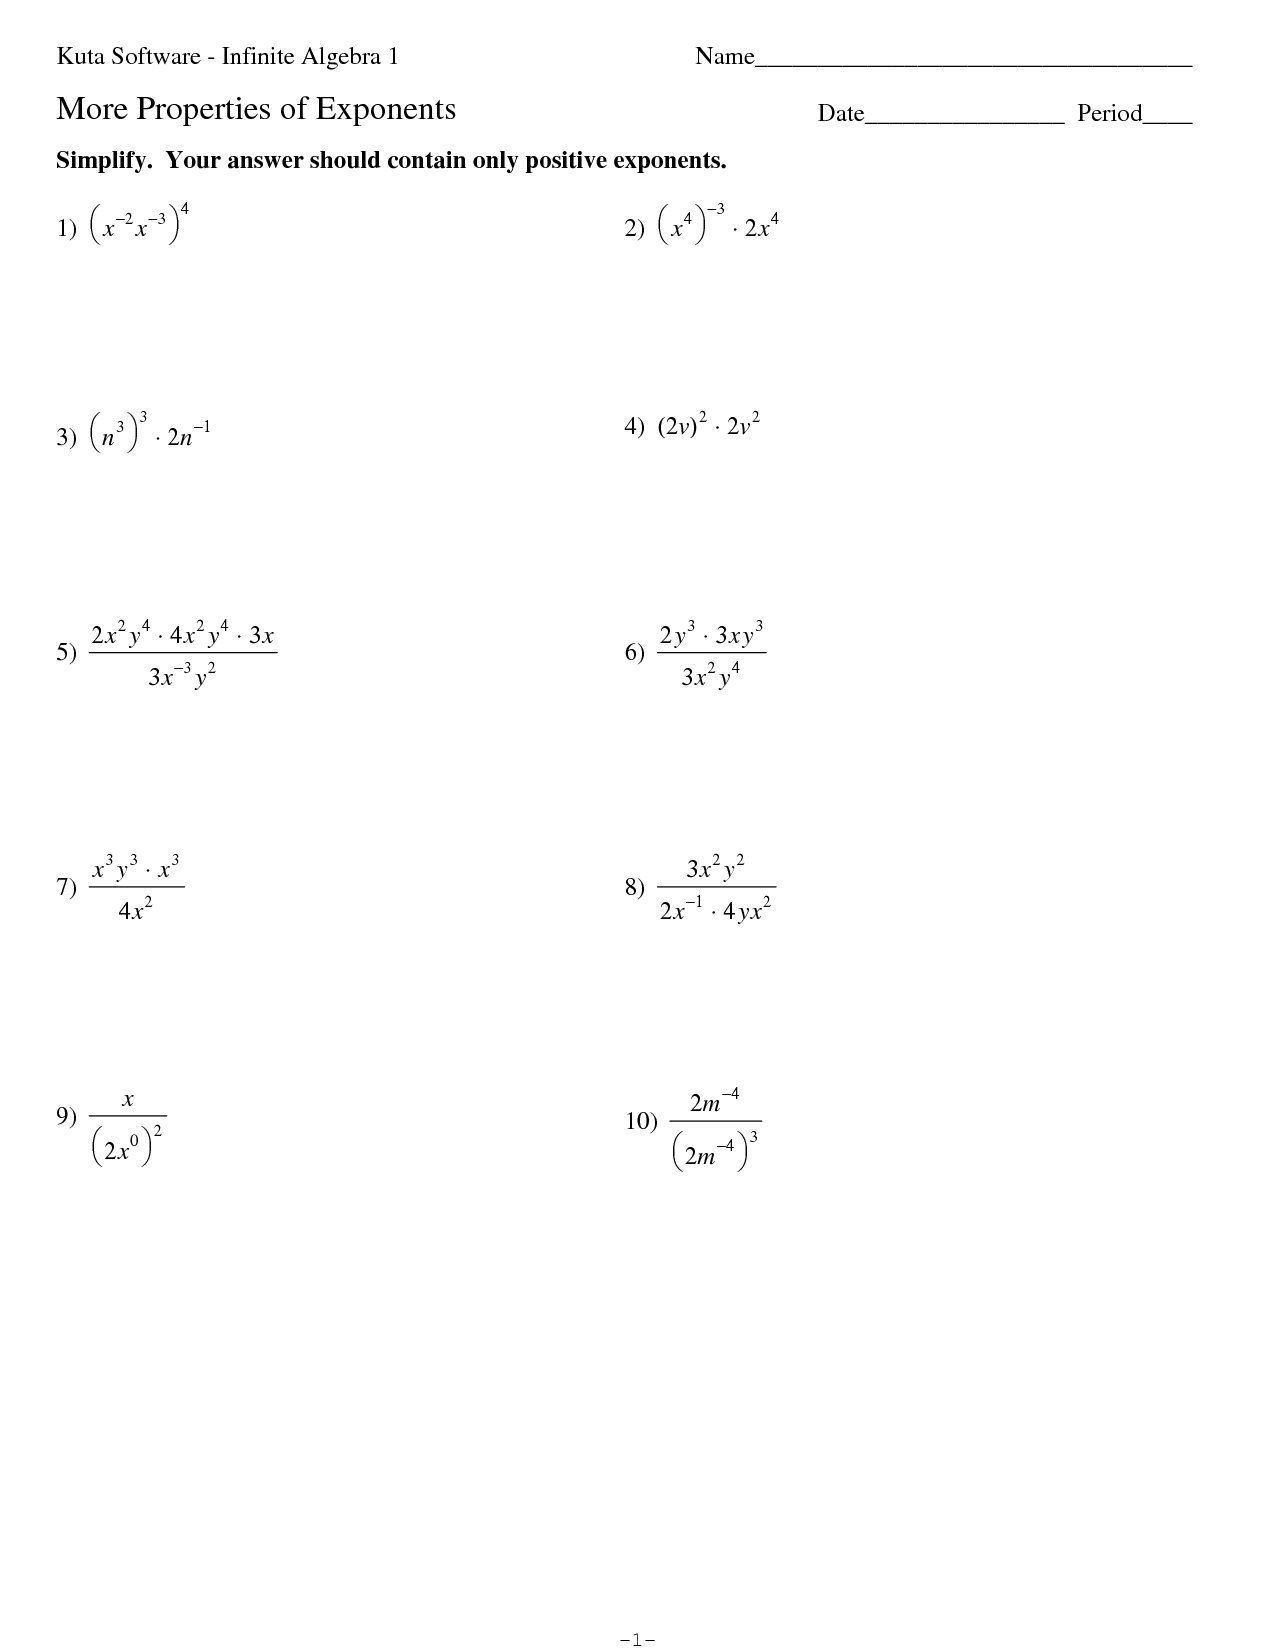 33 Properties Of Exponents Worksheet Algebra 2